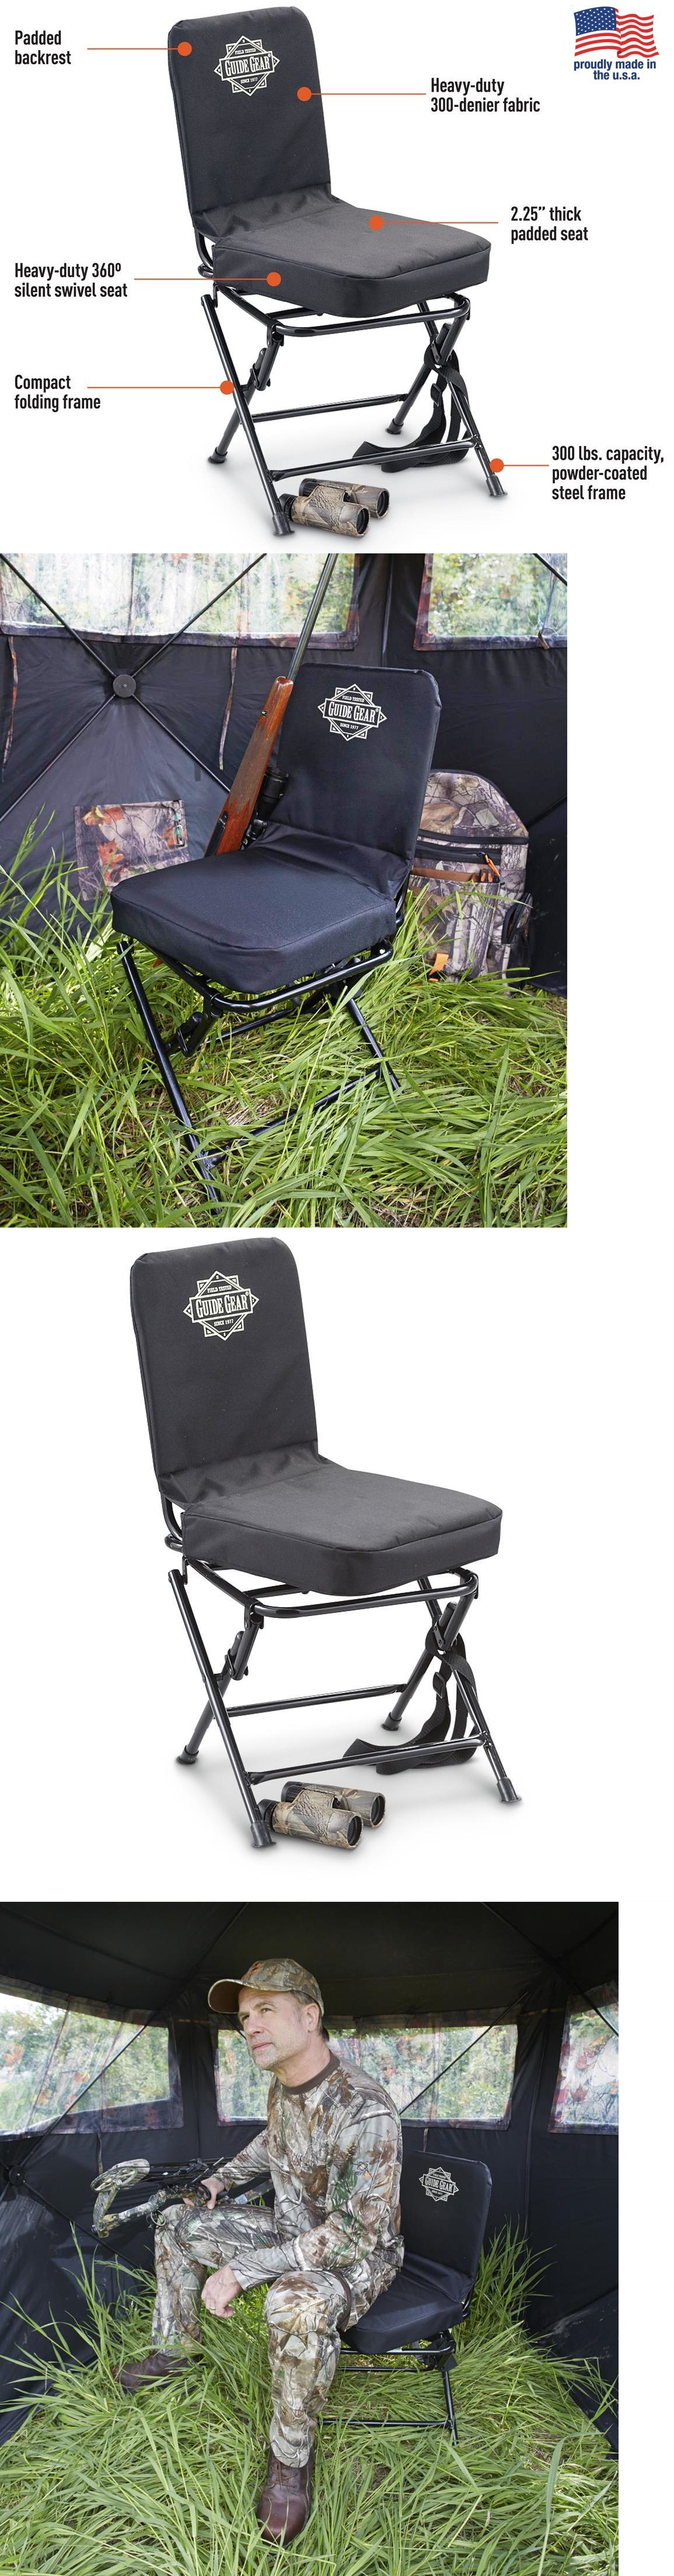 Seats and Chairs 52507: Hunting Blind Chair Seat Folding Steel Frame 360° Silent Swivel Padded Back Rest -> BUY IT NOW ONLY: $131.66 on eBay!